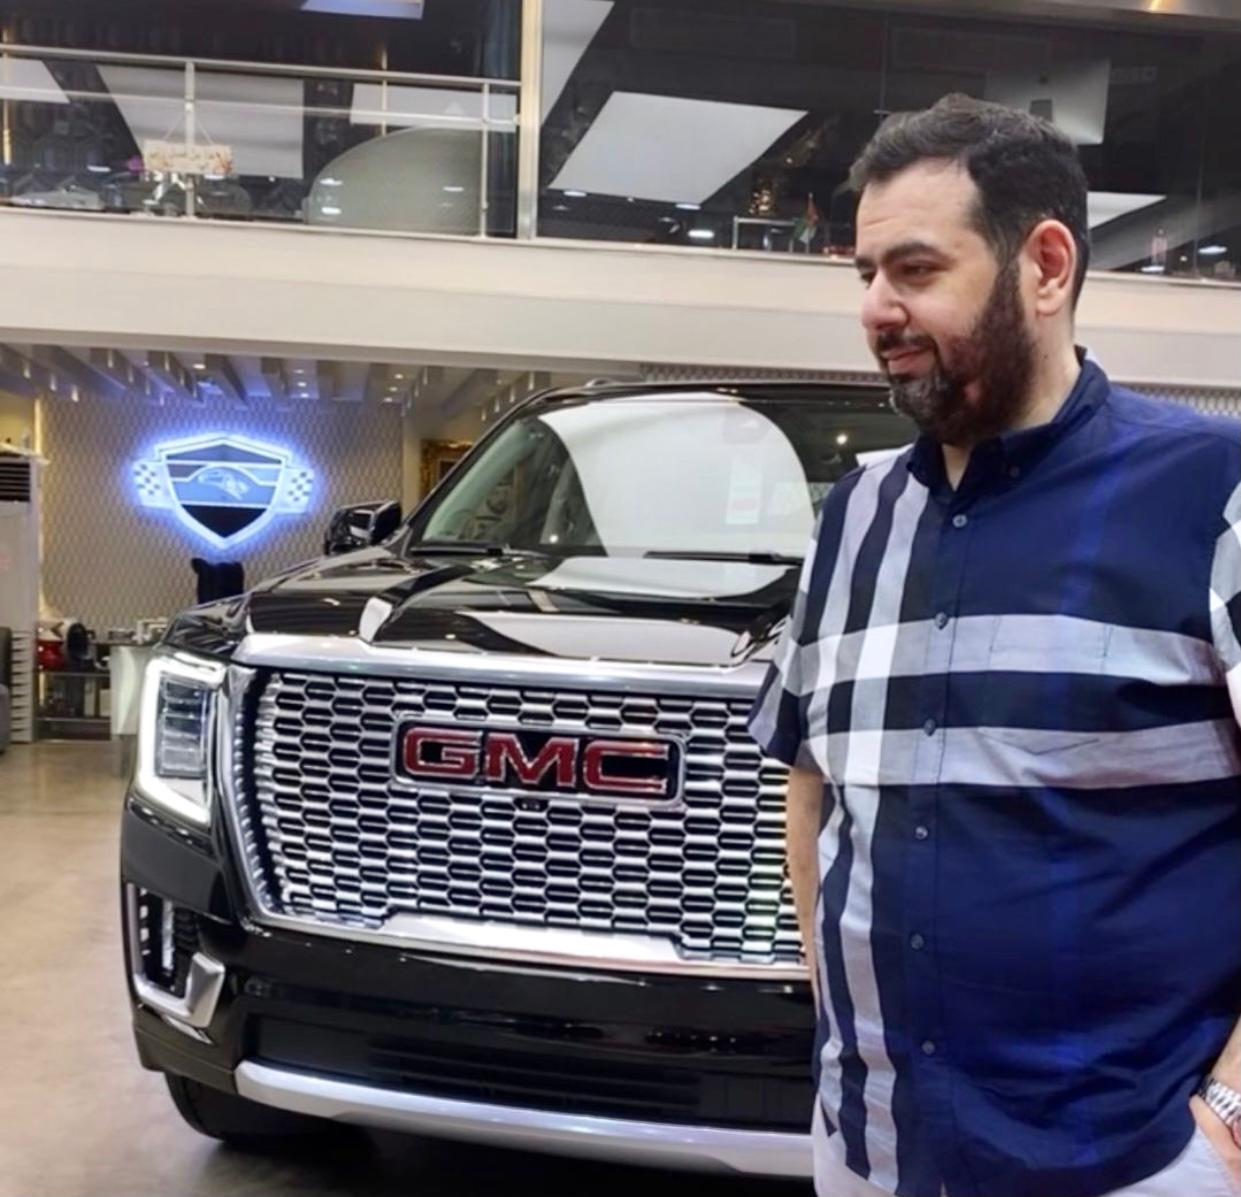 Owner of the eminent car dealership, Levant Auto Trading – Fahed Alterkawi is making strides and profoundly dominating the arete luxury car buy and sell industry in Dubai